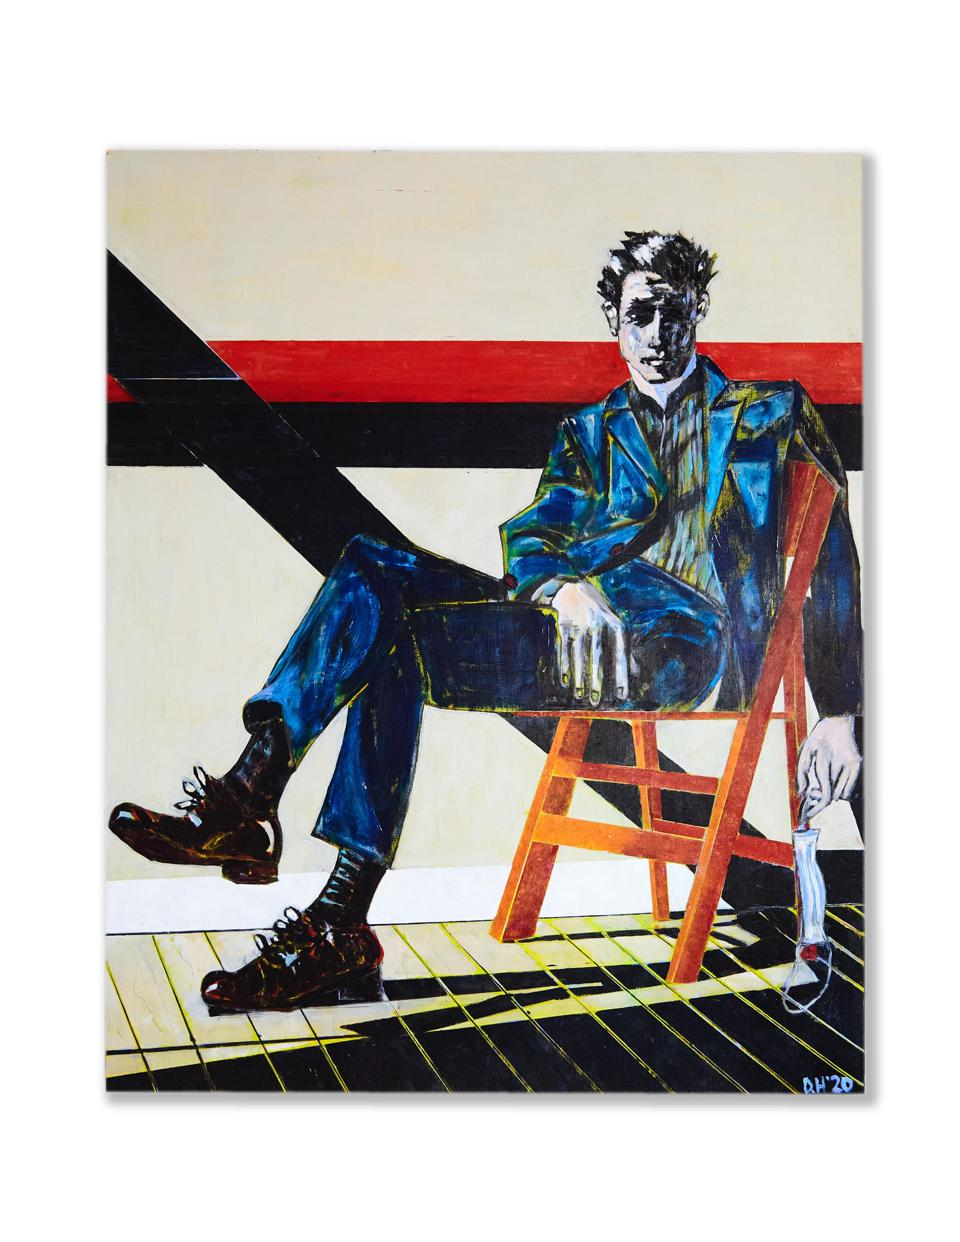 Man in Blue Suit sitting on an orange chair holding a face mask.  Artwork by Don Hershman.